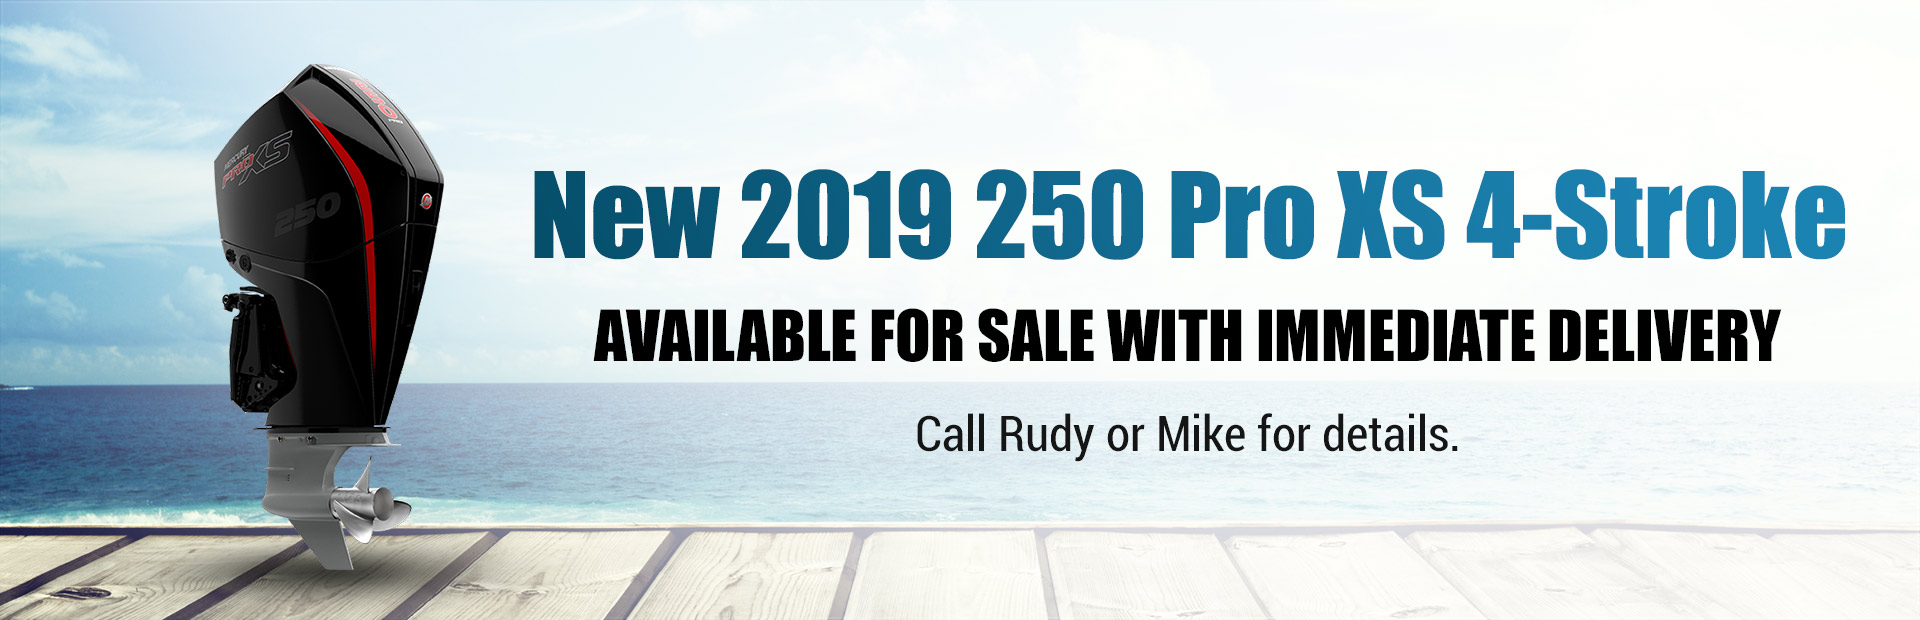 New 2019 Mercury 250 Pro XS 4-Stroke: Call Rudy or Mike for details.